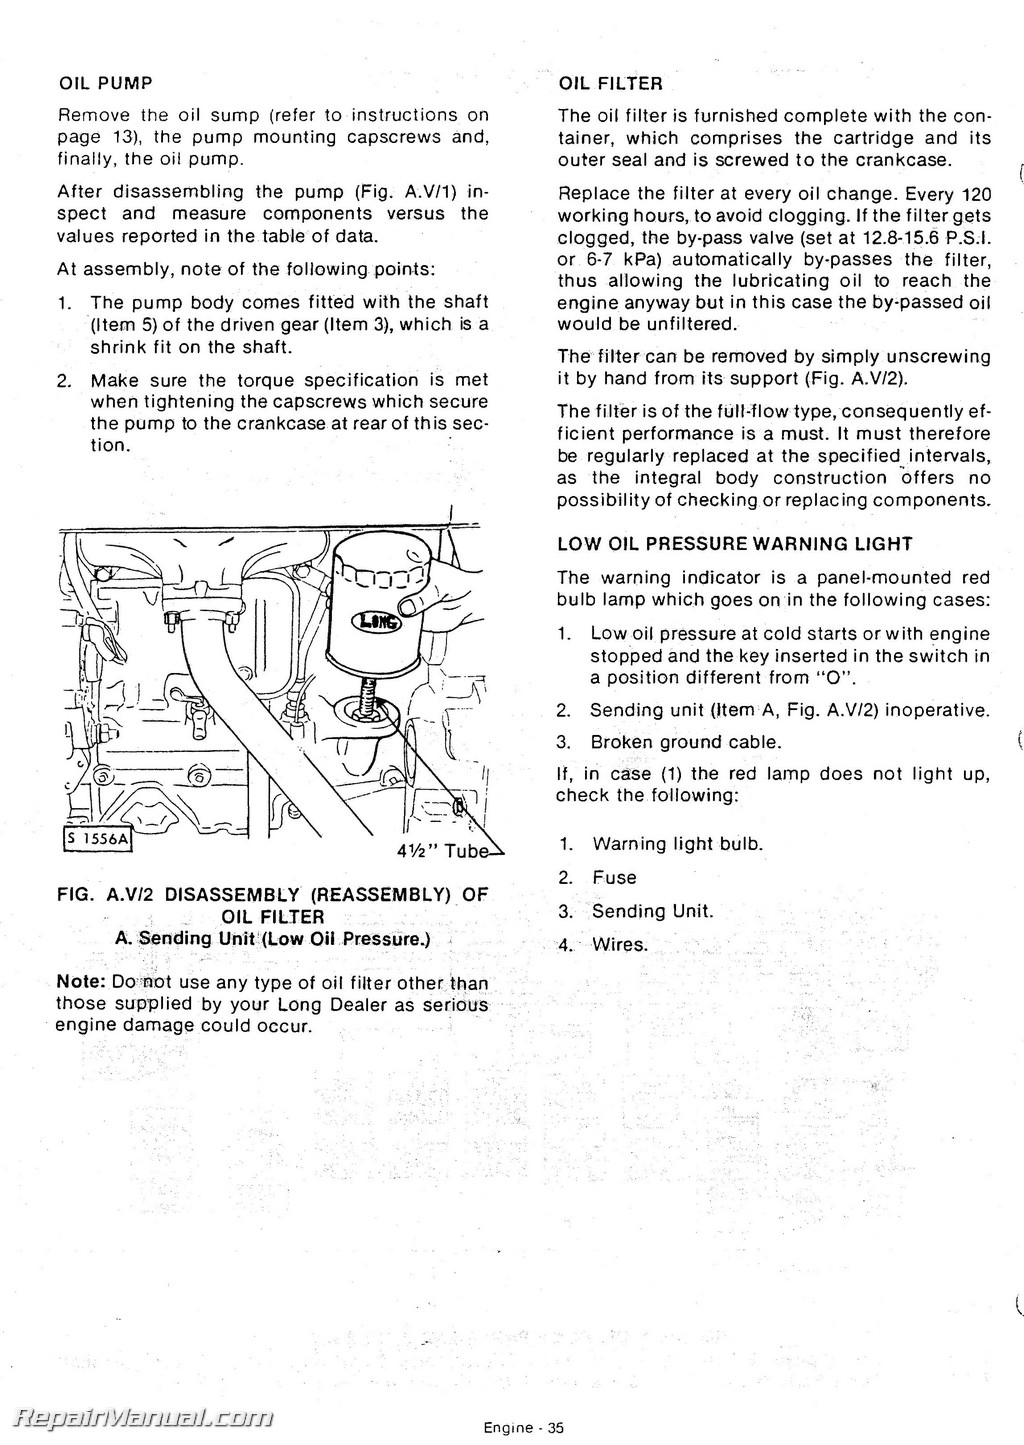 long 560 610 tractor service workshop repair manual repair manual page 3 long 560 610 tractor service workshop repair manual page 2